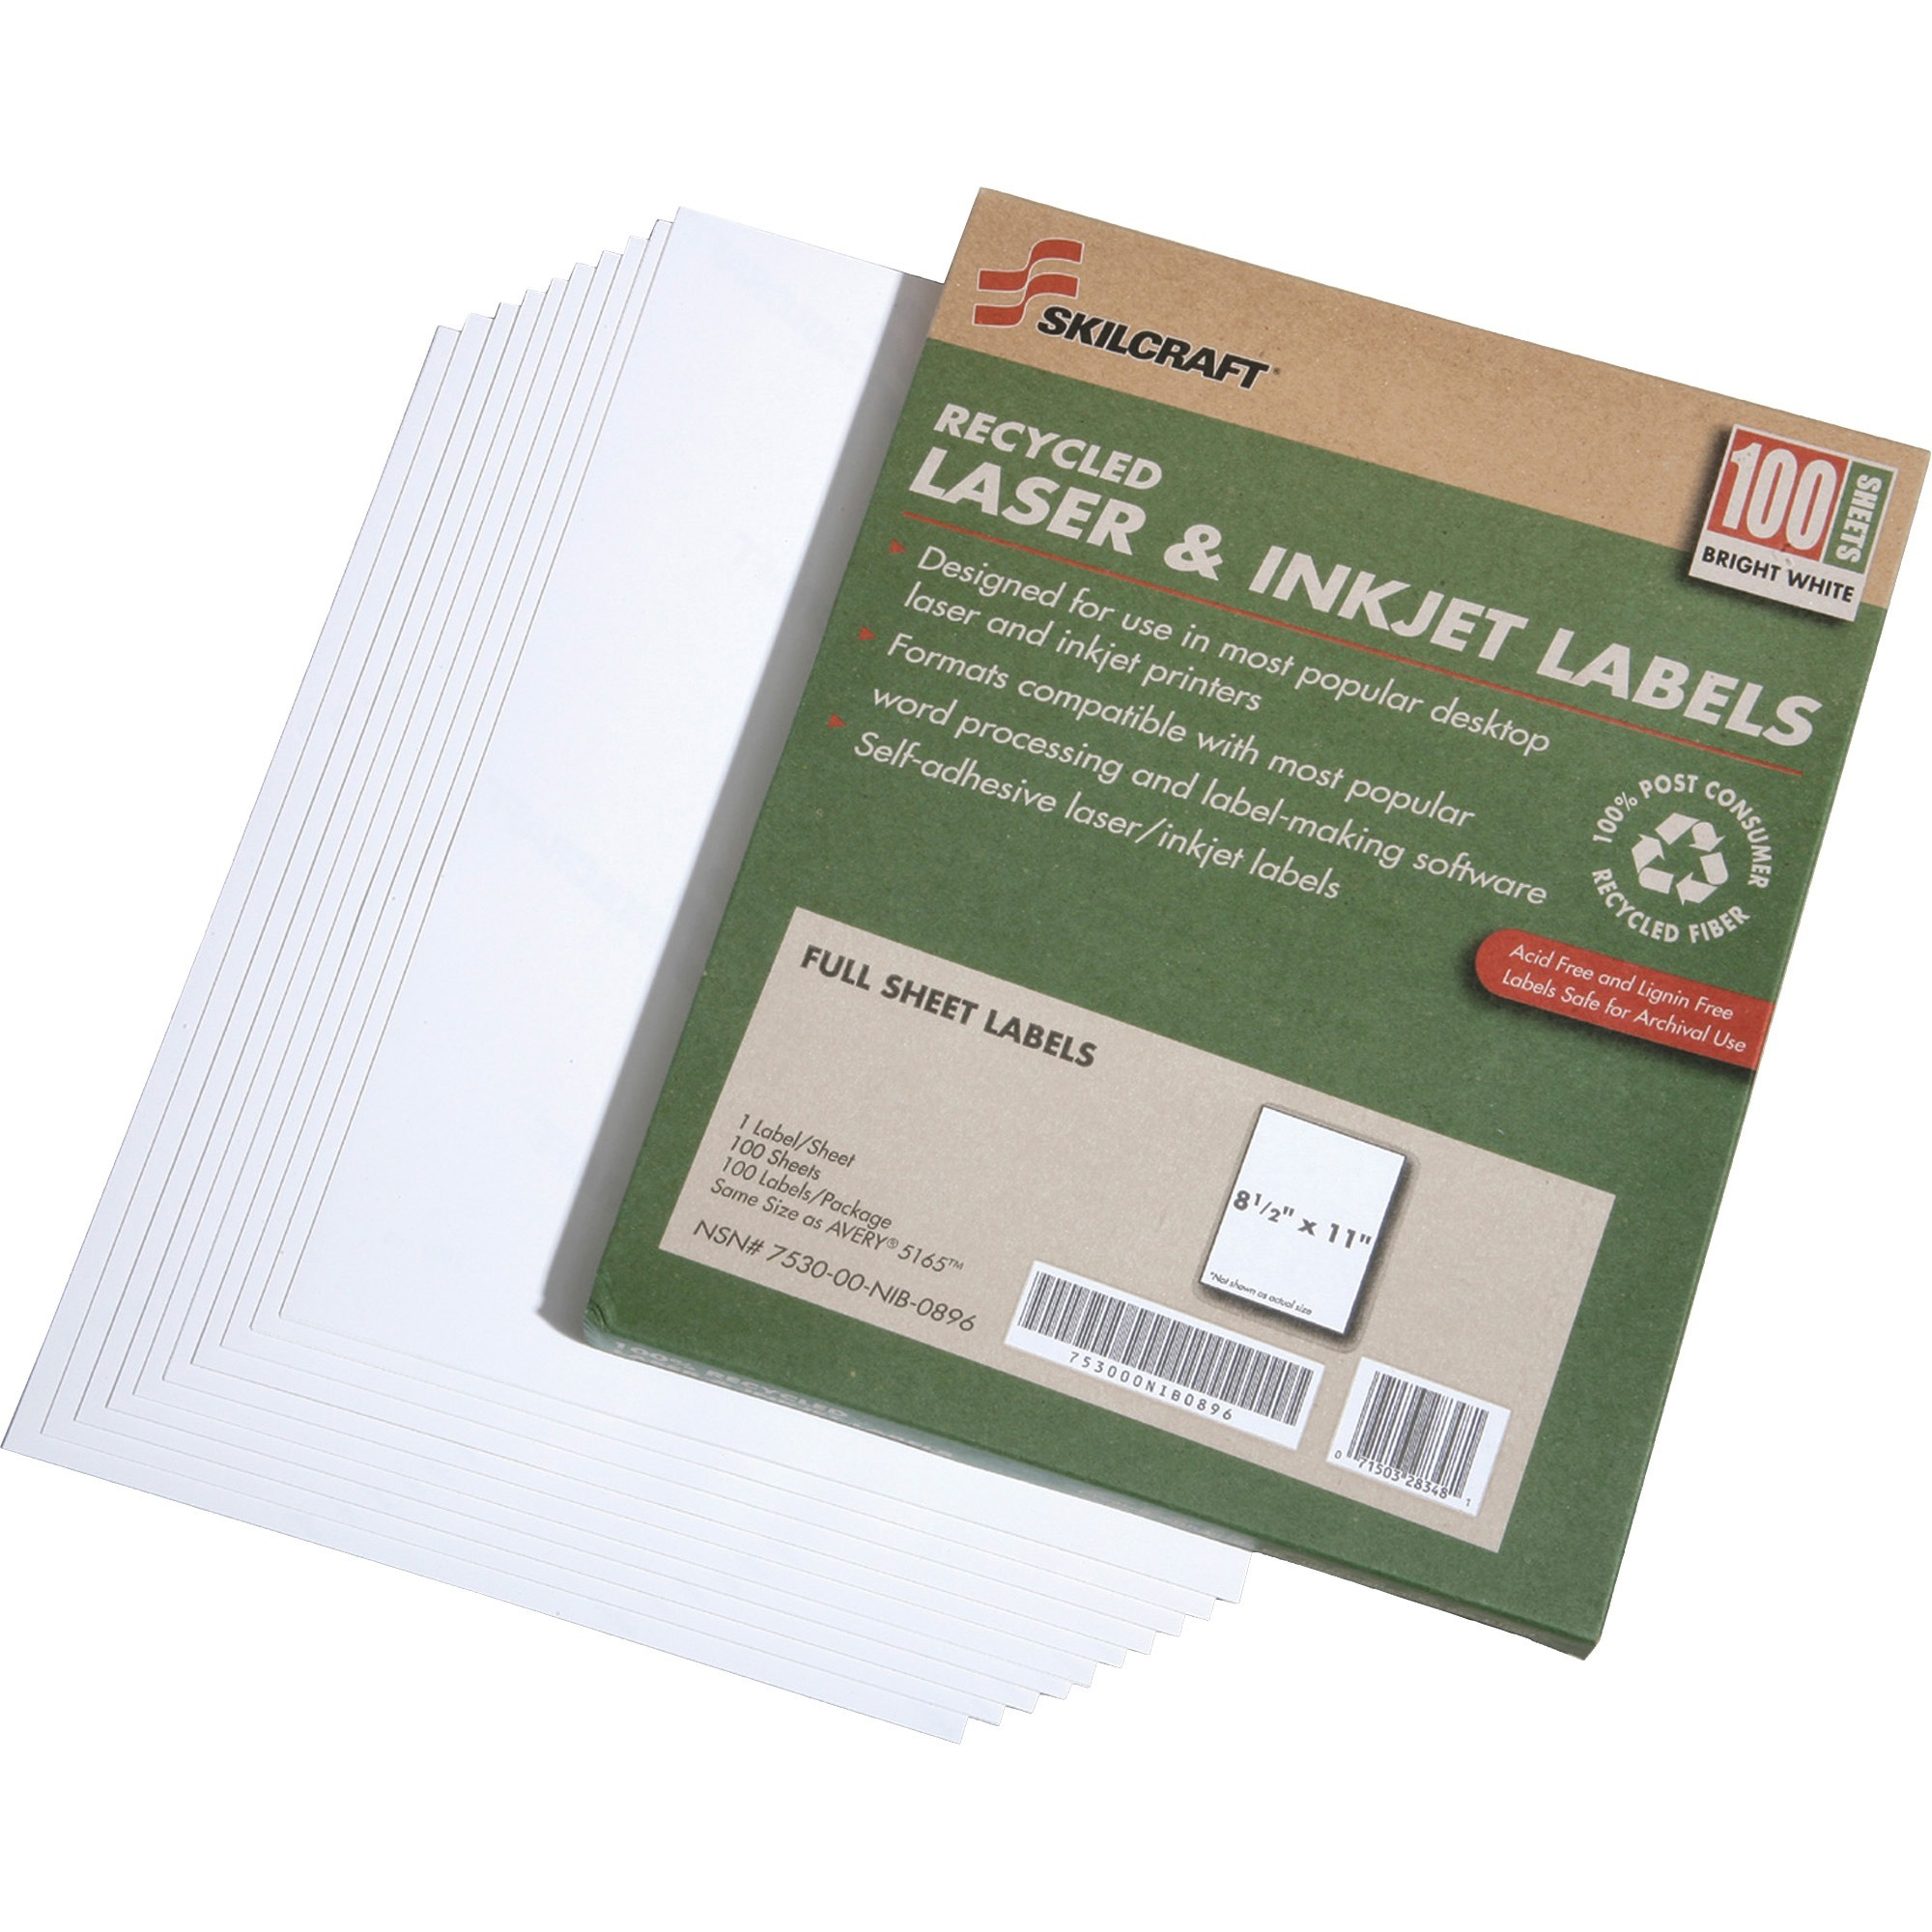 "Skilcraft Full-sheet Labels, Laser/Inkjet, 8-1/2""x11"", 100 Sht/BX, WE 5789298"